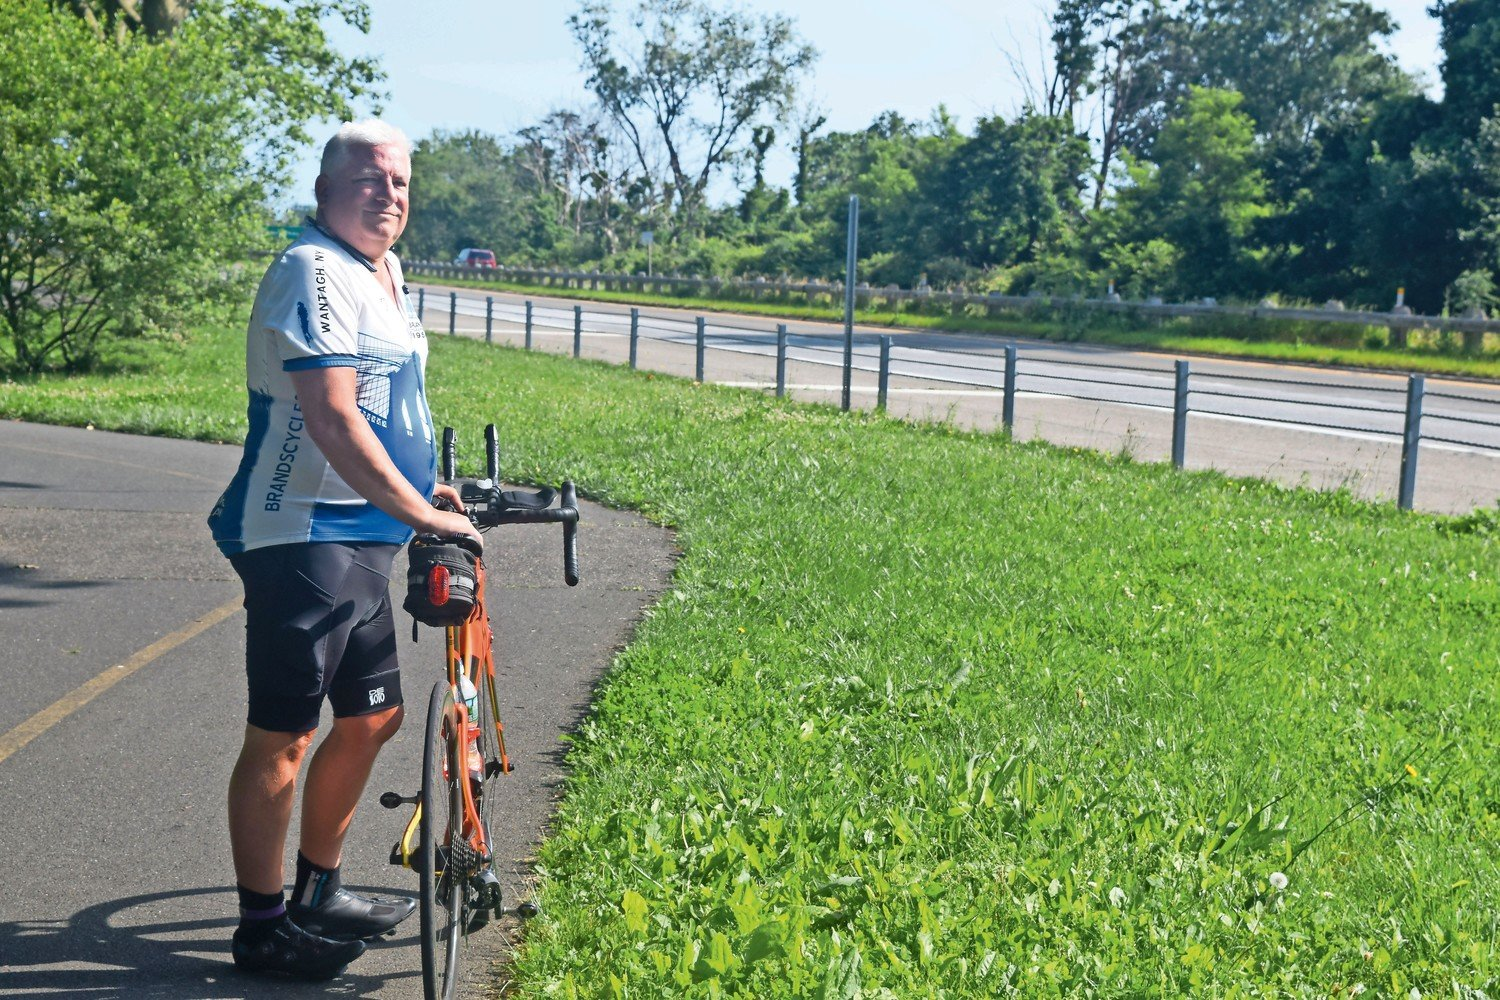 Phil Kingsbury, of Wantagh, in 2017 on the Wantagh Parkway mixed-use path that leads to the Ocean Parkway Greenway. On Tuesday, Governor Cuomo announced a 10-mile, $16.2 million extension of the greenway.